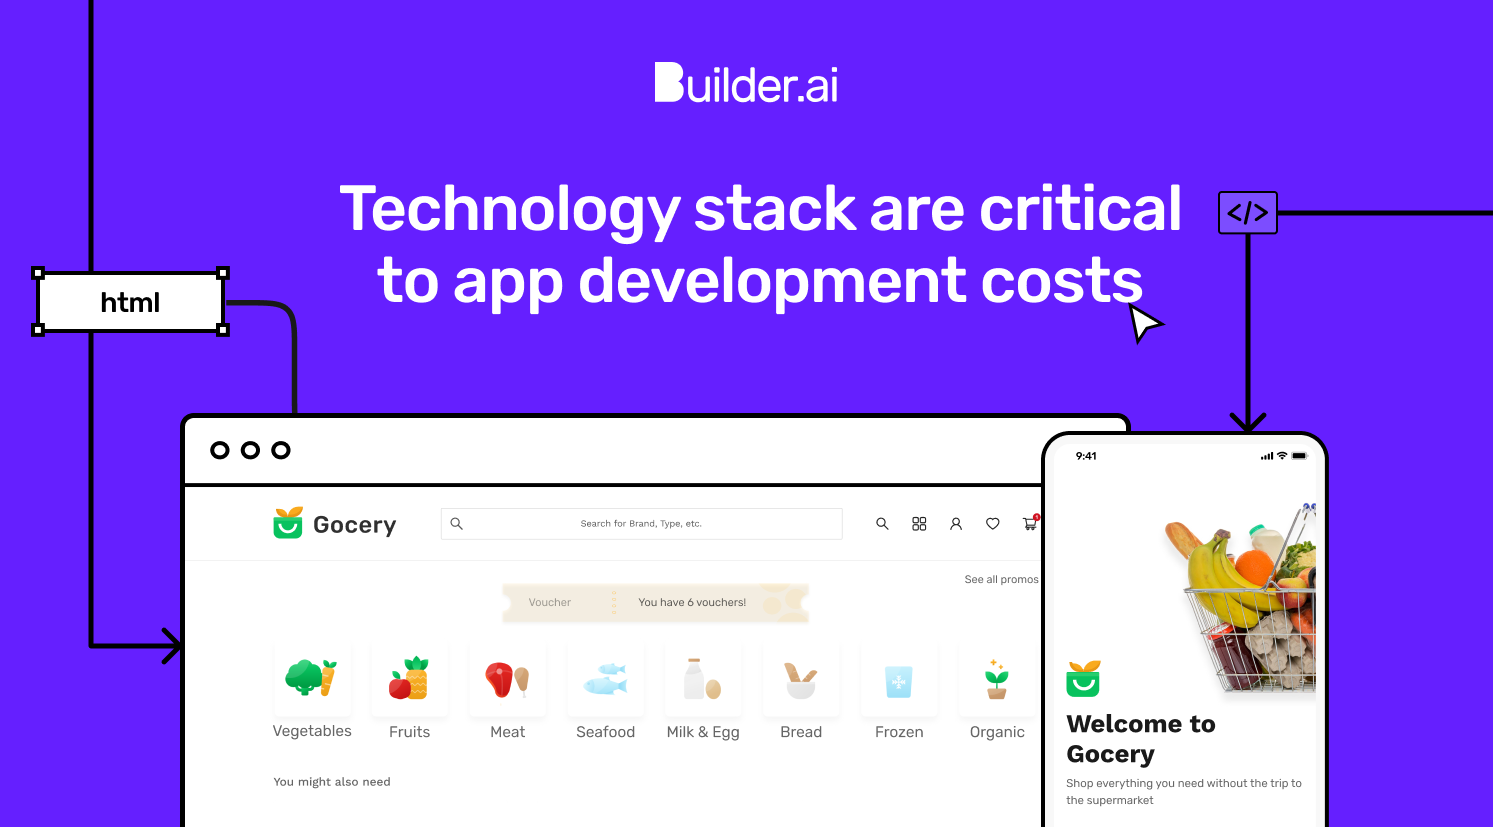 Technology stacks are critical to app development costs